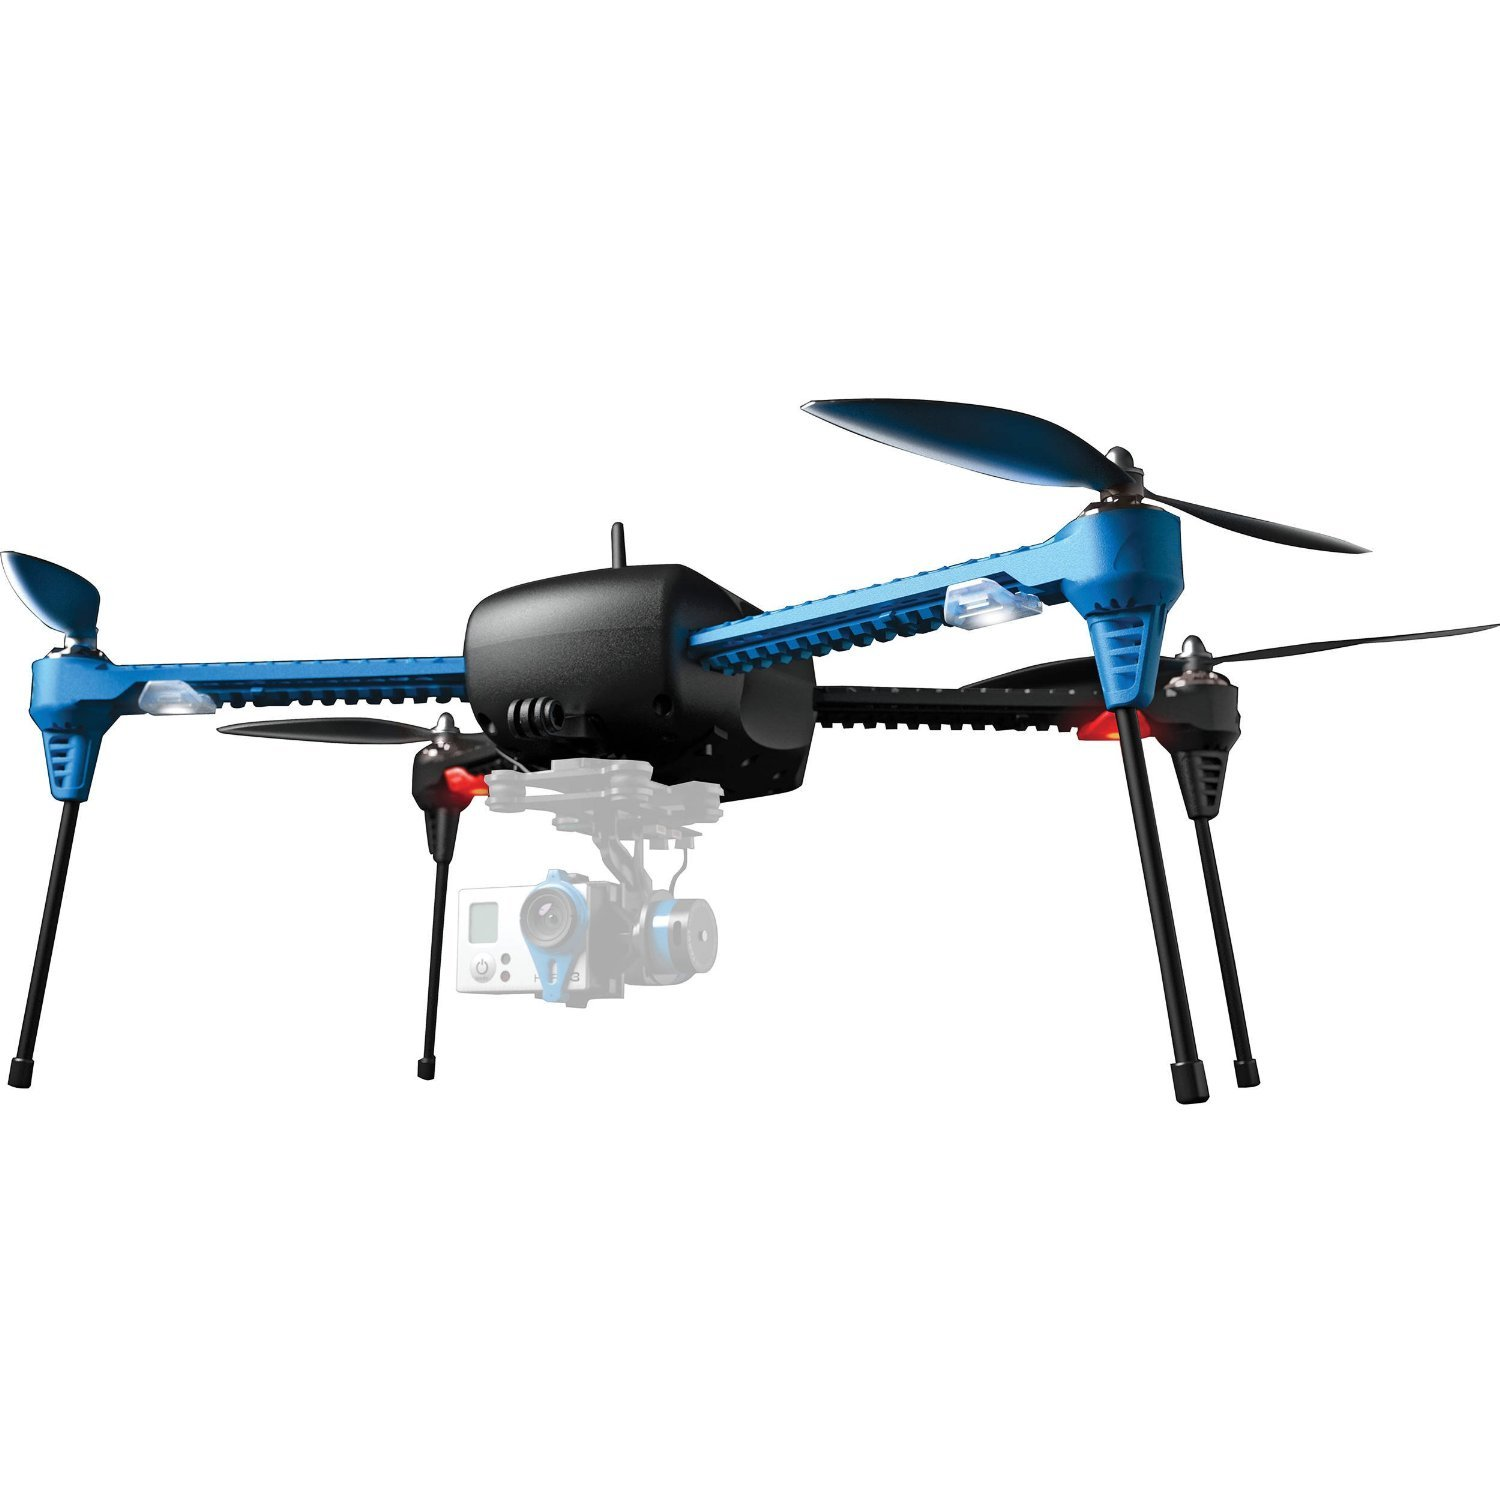 3d Robotics Iris+ Cinematography Quadcopter